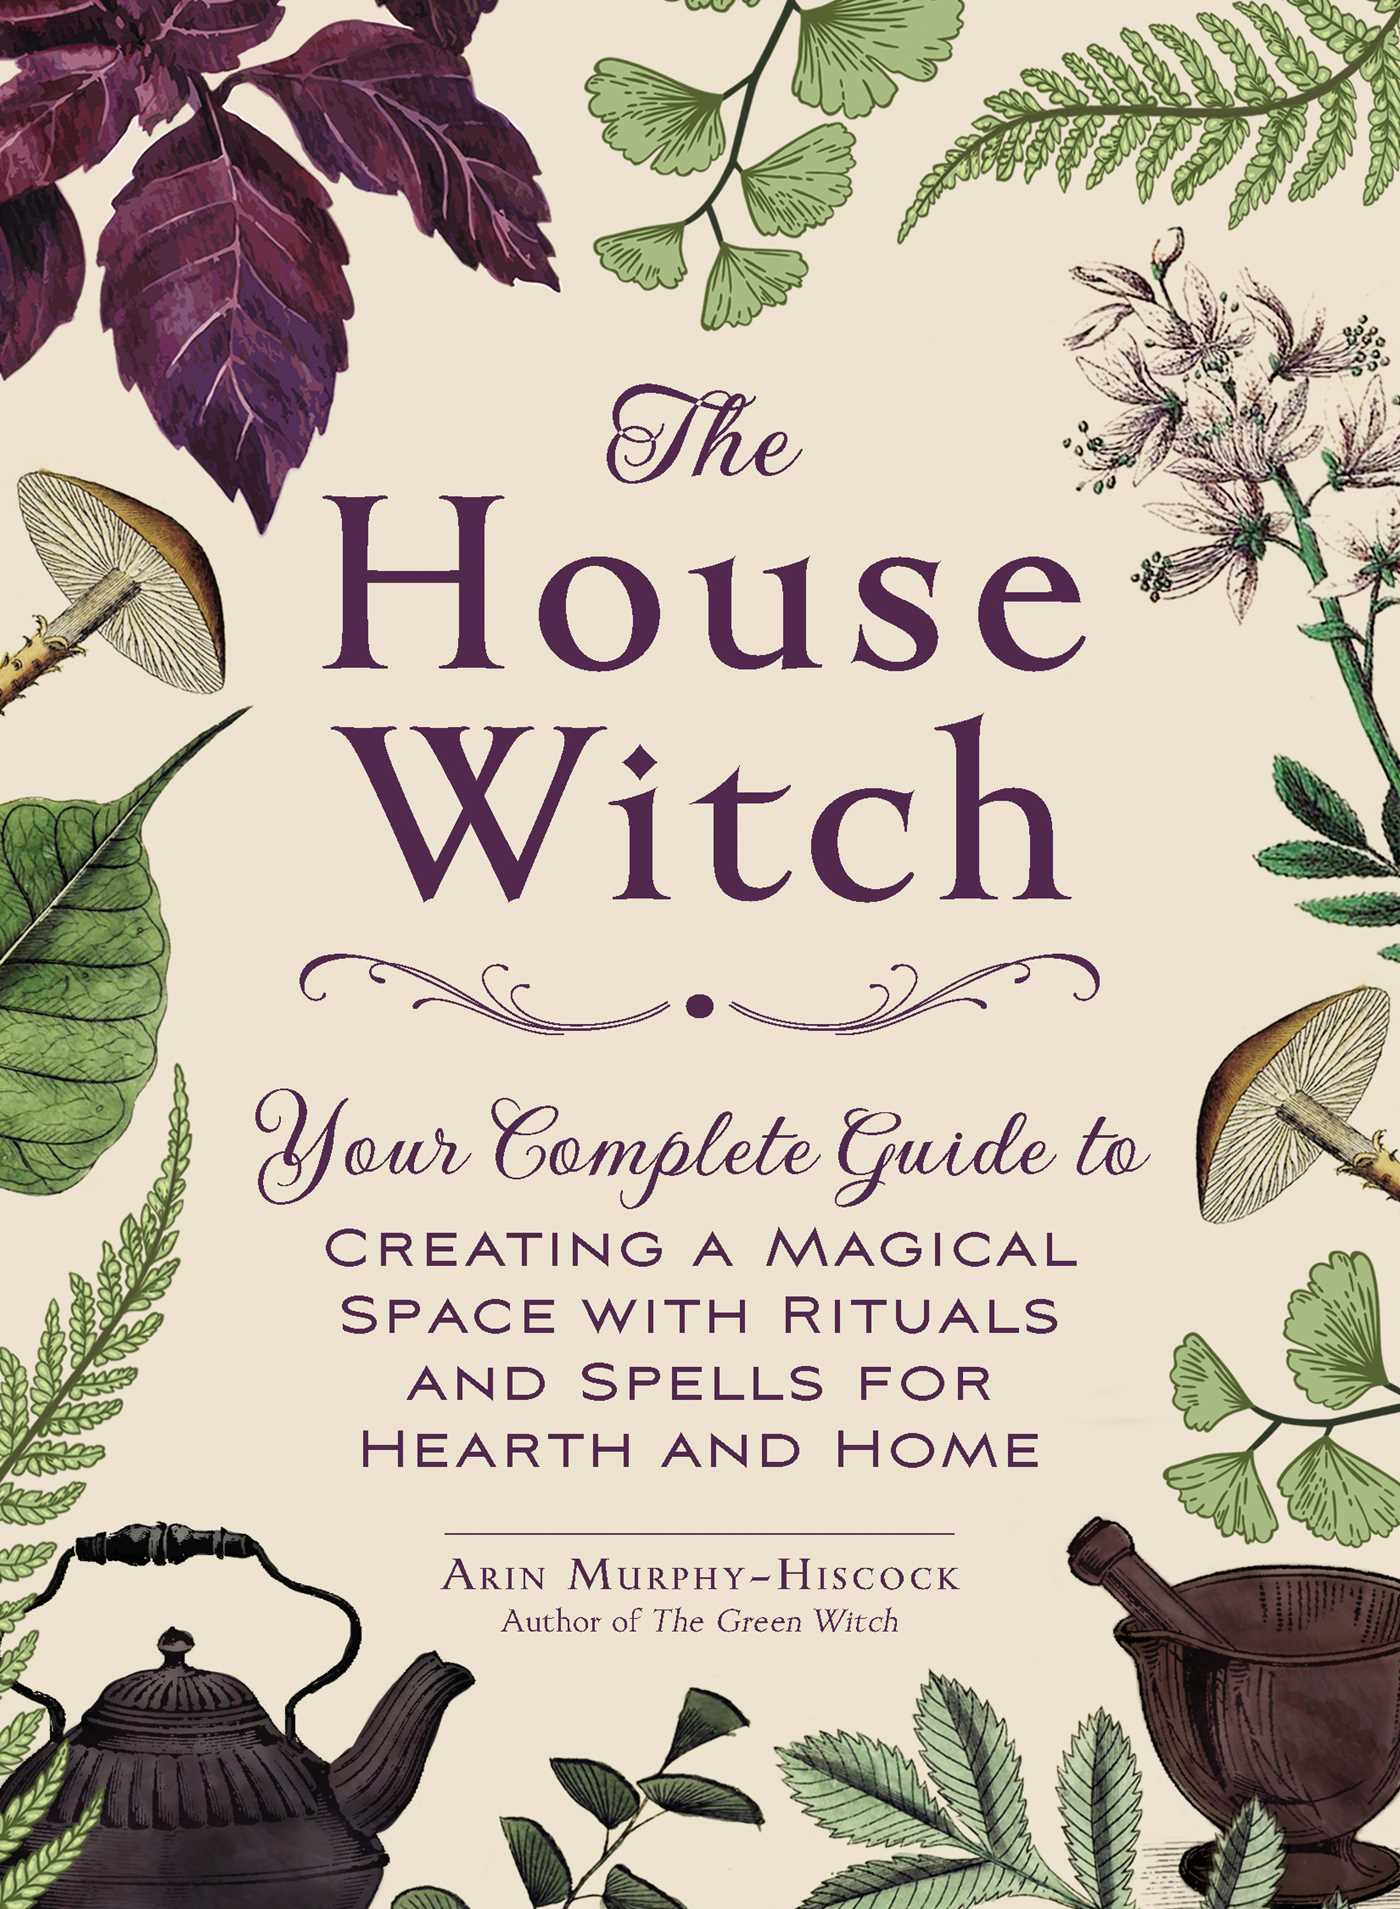 The House Witch : Your Complete Guide to Creating a Magical Space with Rituals and Spells for Hearth and Home | Faith & Spirituality